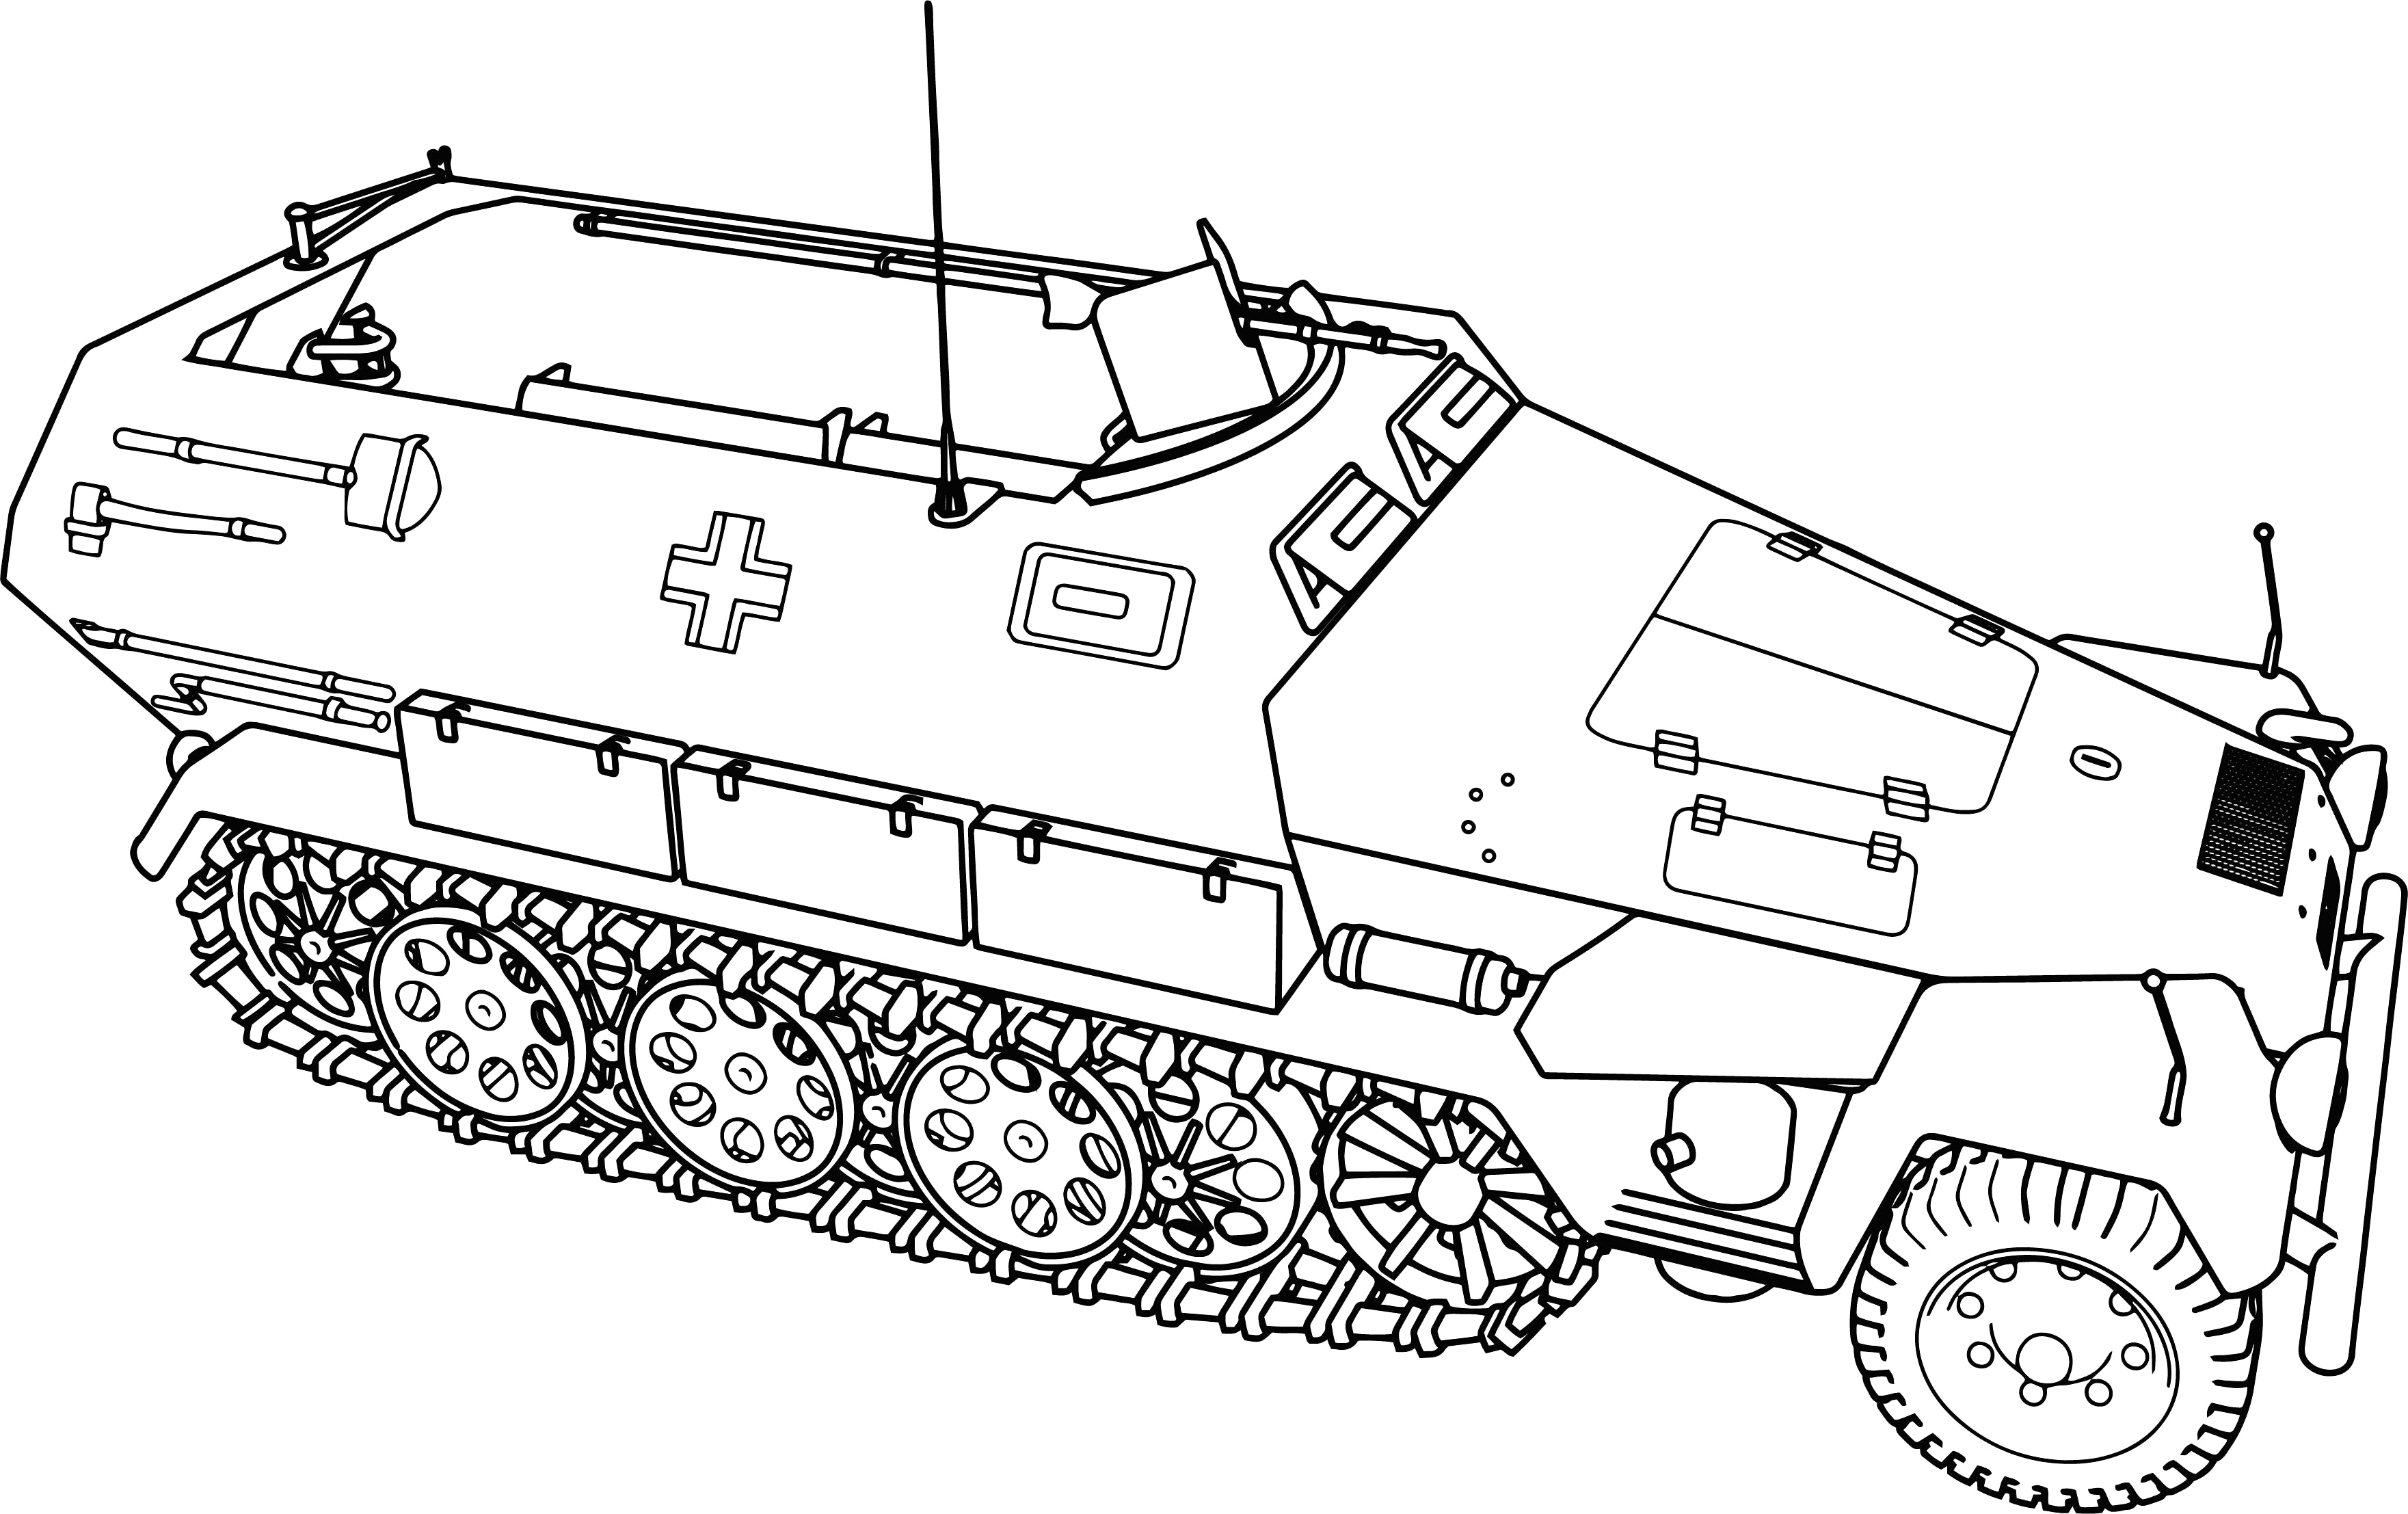 army tank coloring pictures get this army tank coloring pages free printable 577vn army coloring tank pictures